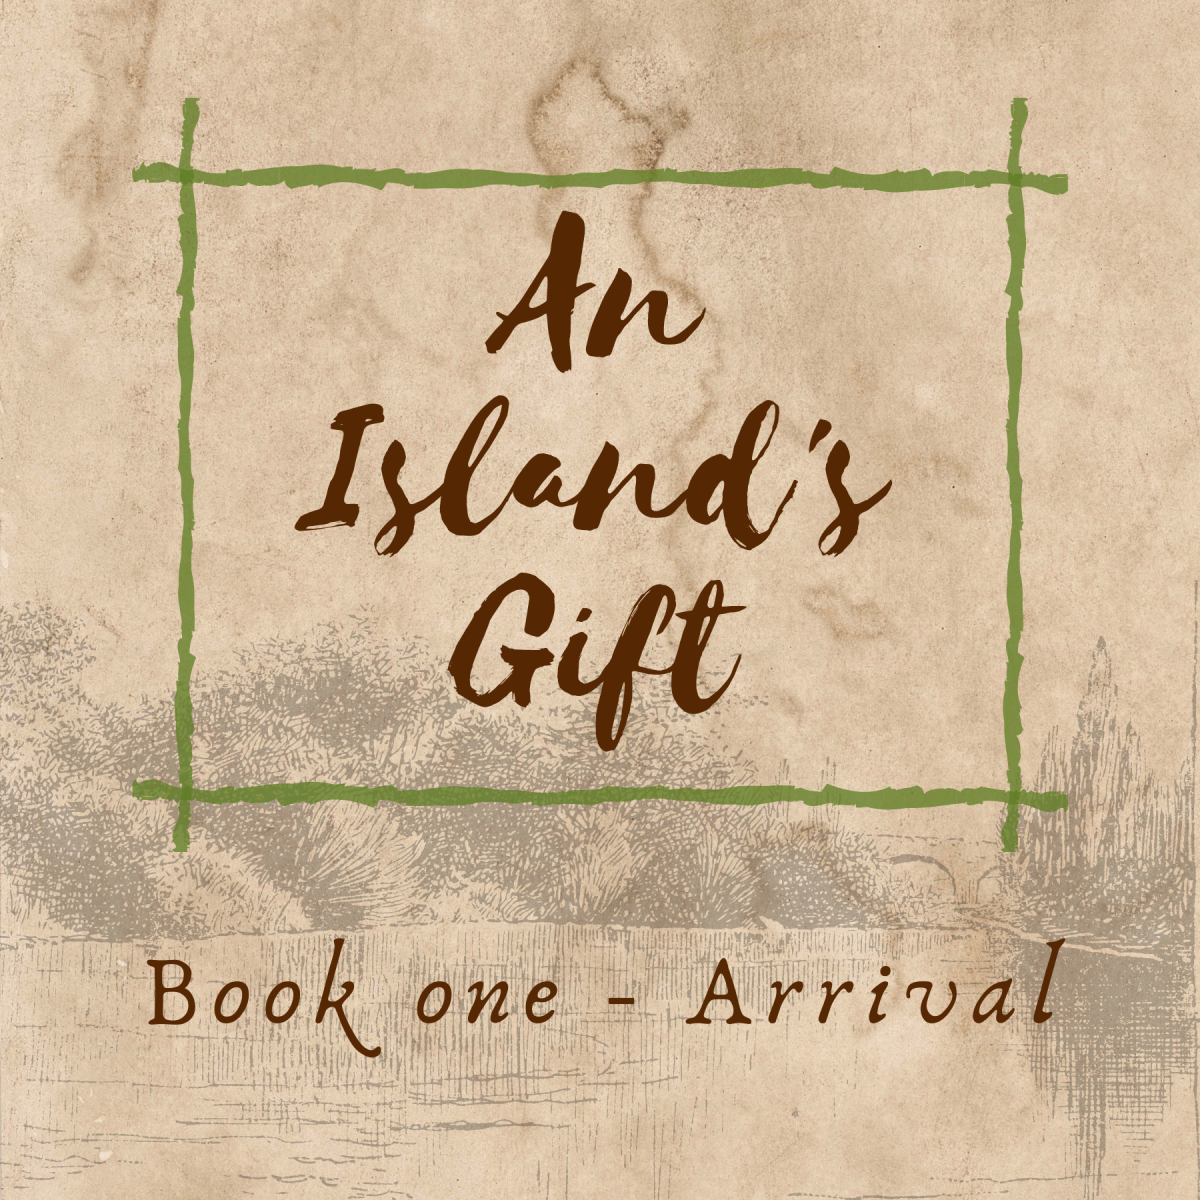 An Island's Gift book one: arrival